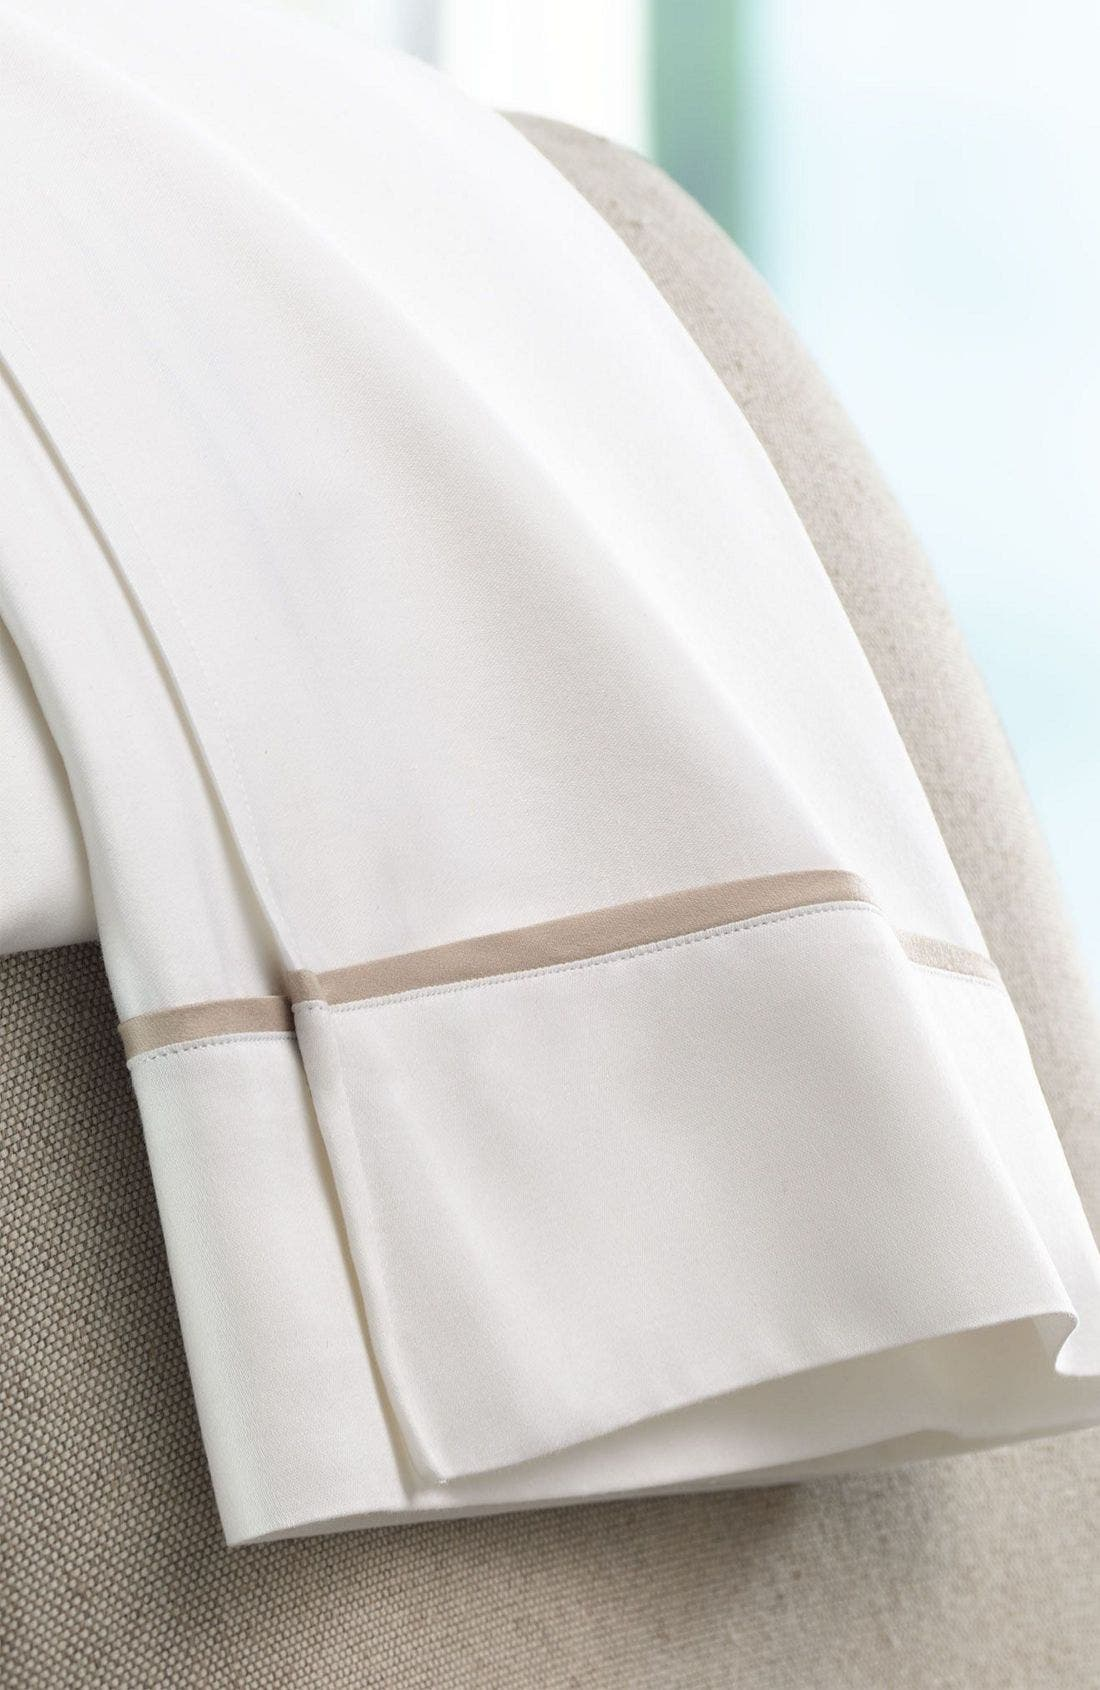 Main Image - Westin At Home 300 Thread Count Luxe Flat Sheet